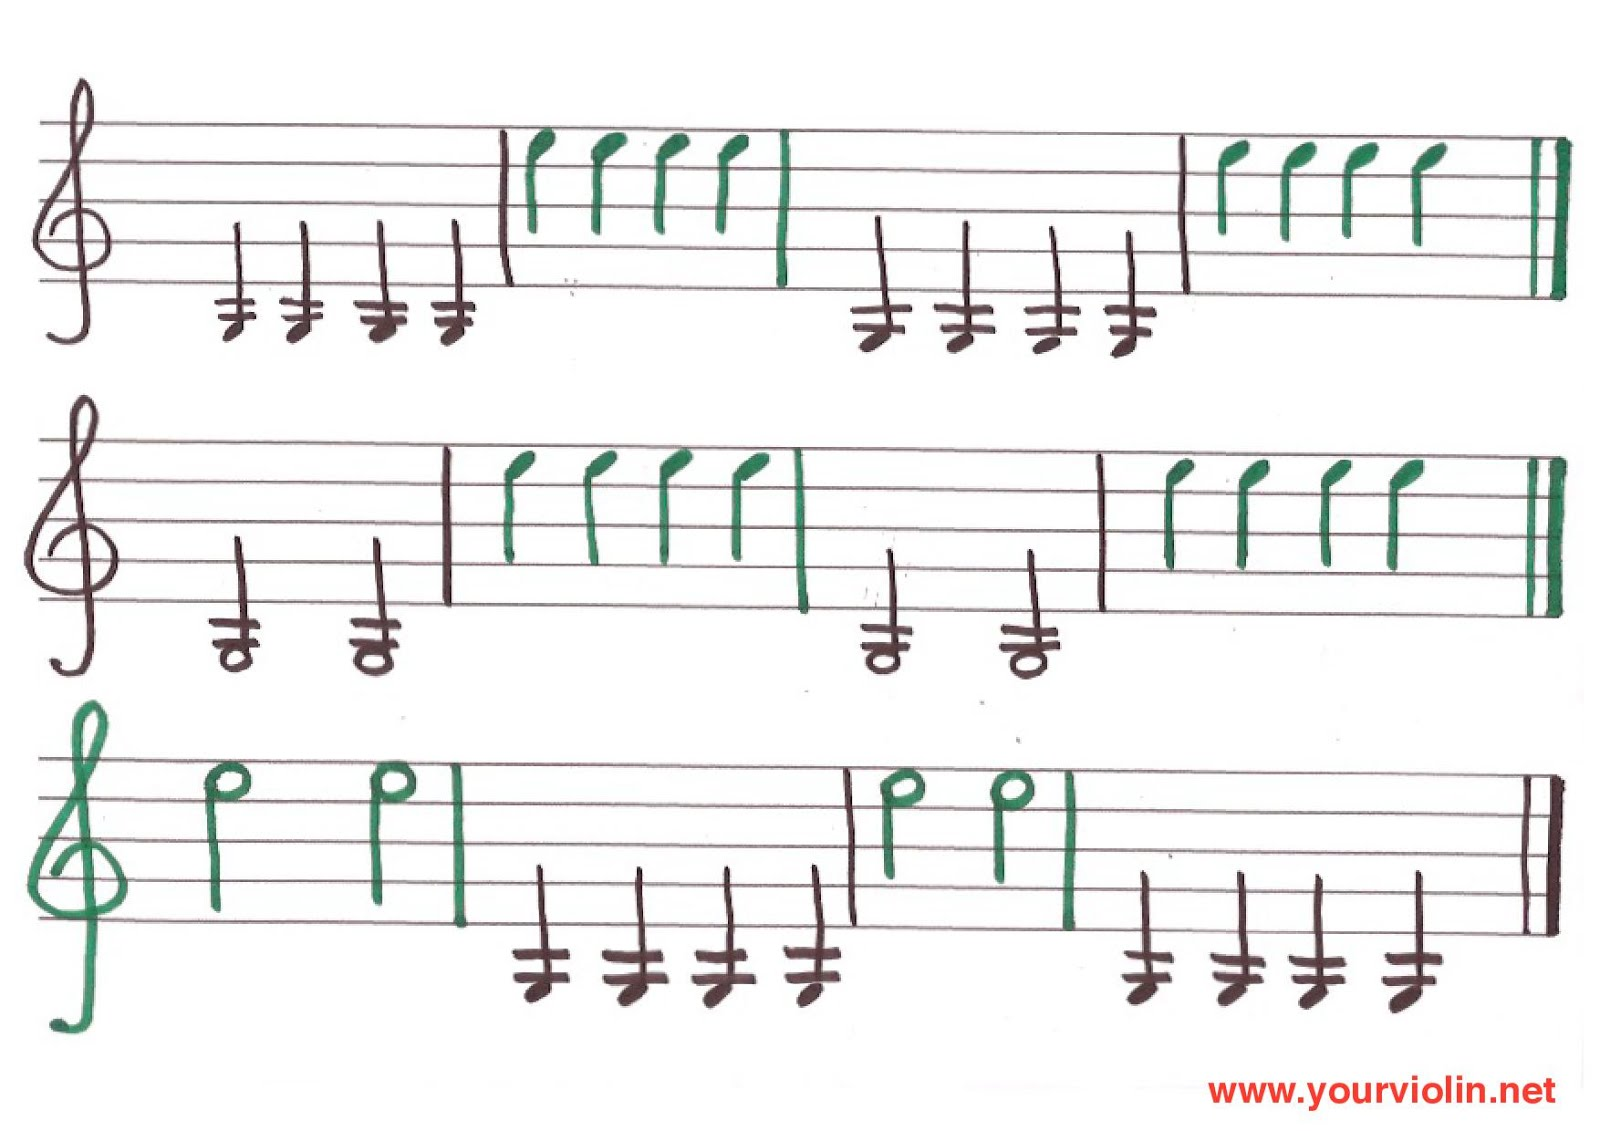 FREE Sheet Music For Beginners with Video Tutorials – Music